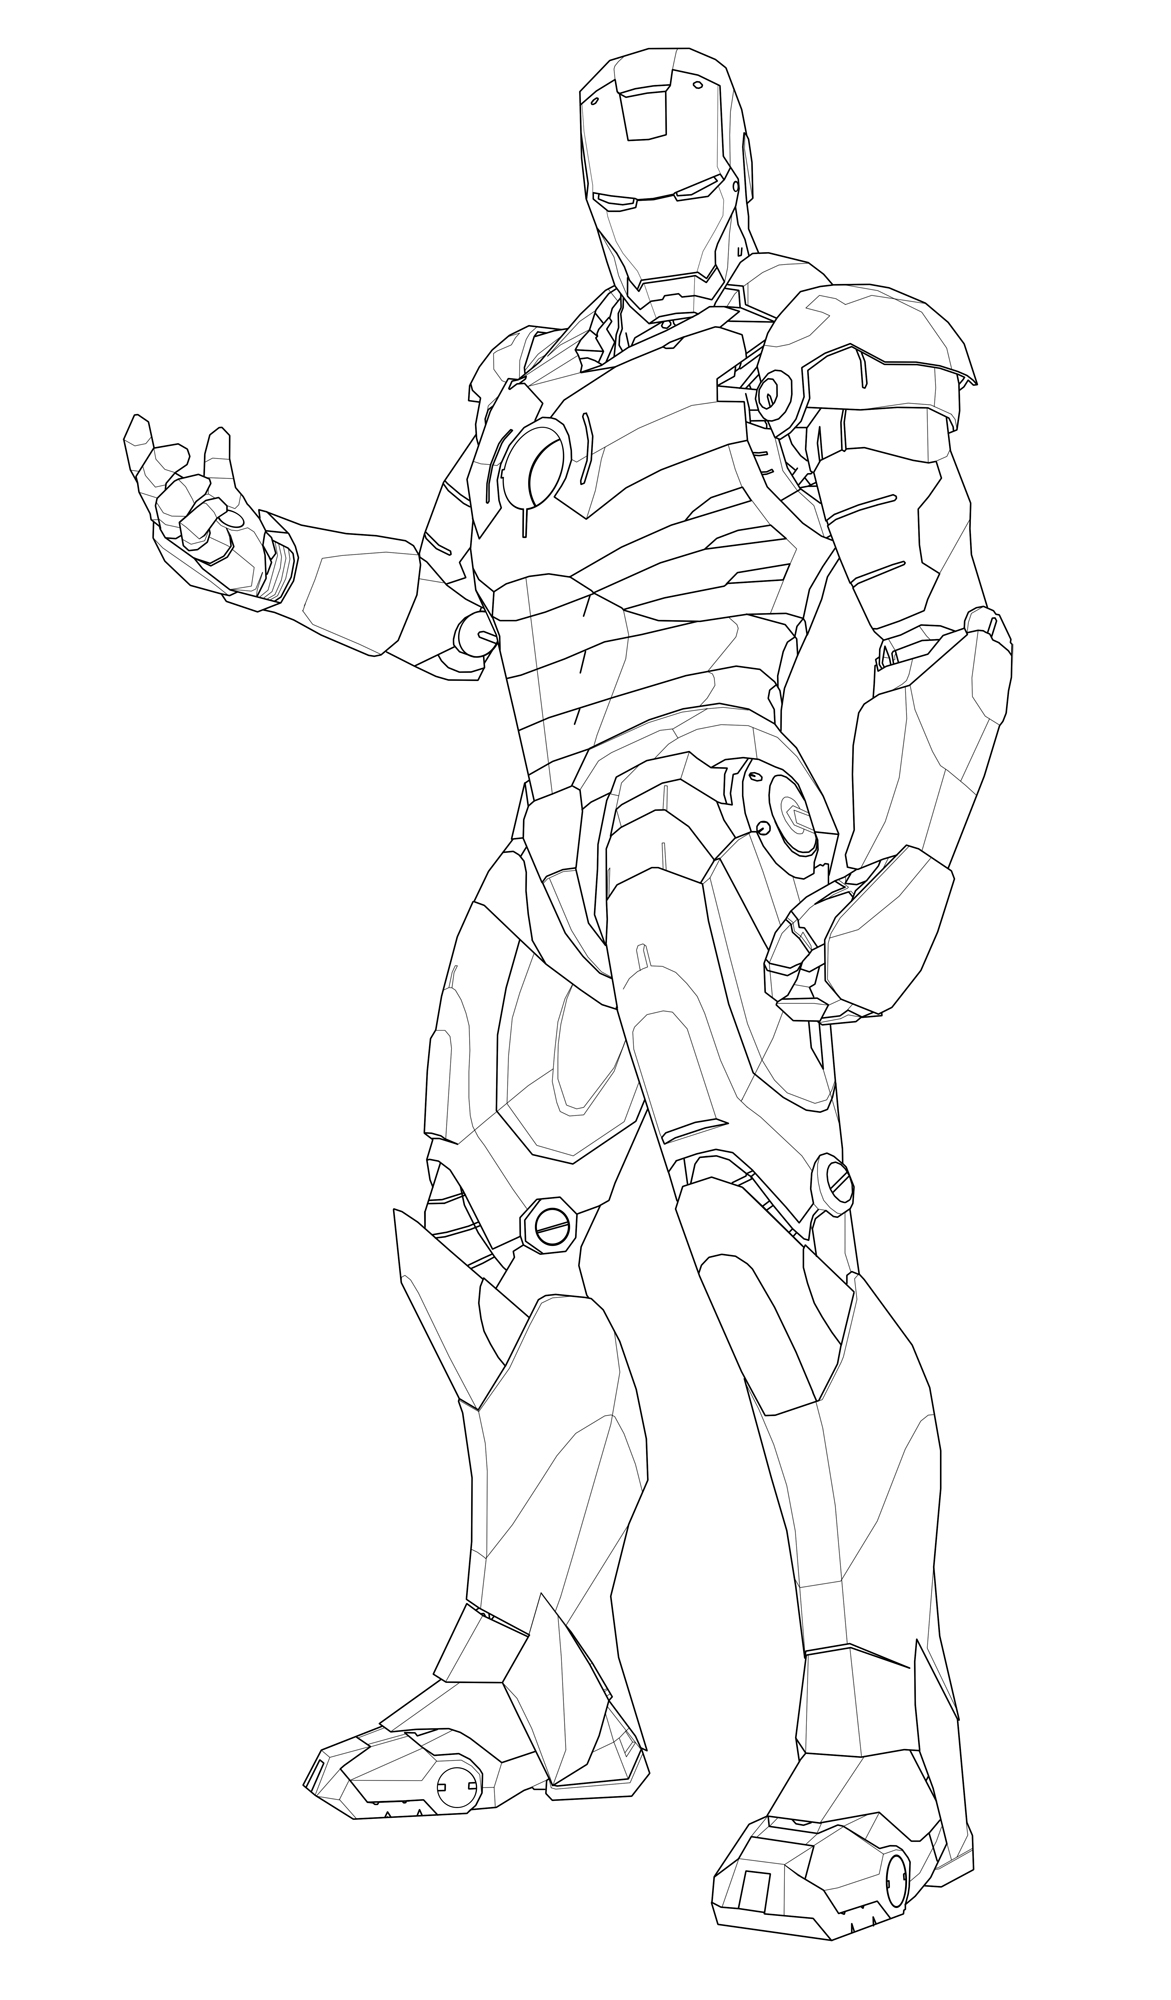 Mobileiron Man 3 Mark 39 Coloring Sheets Coloring Pages